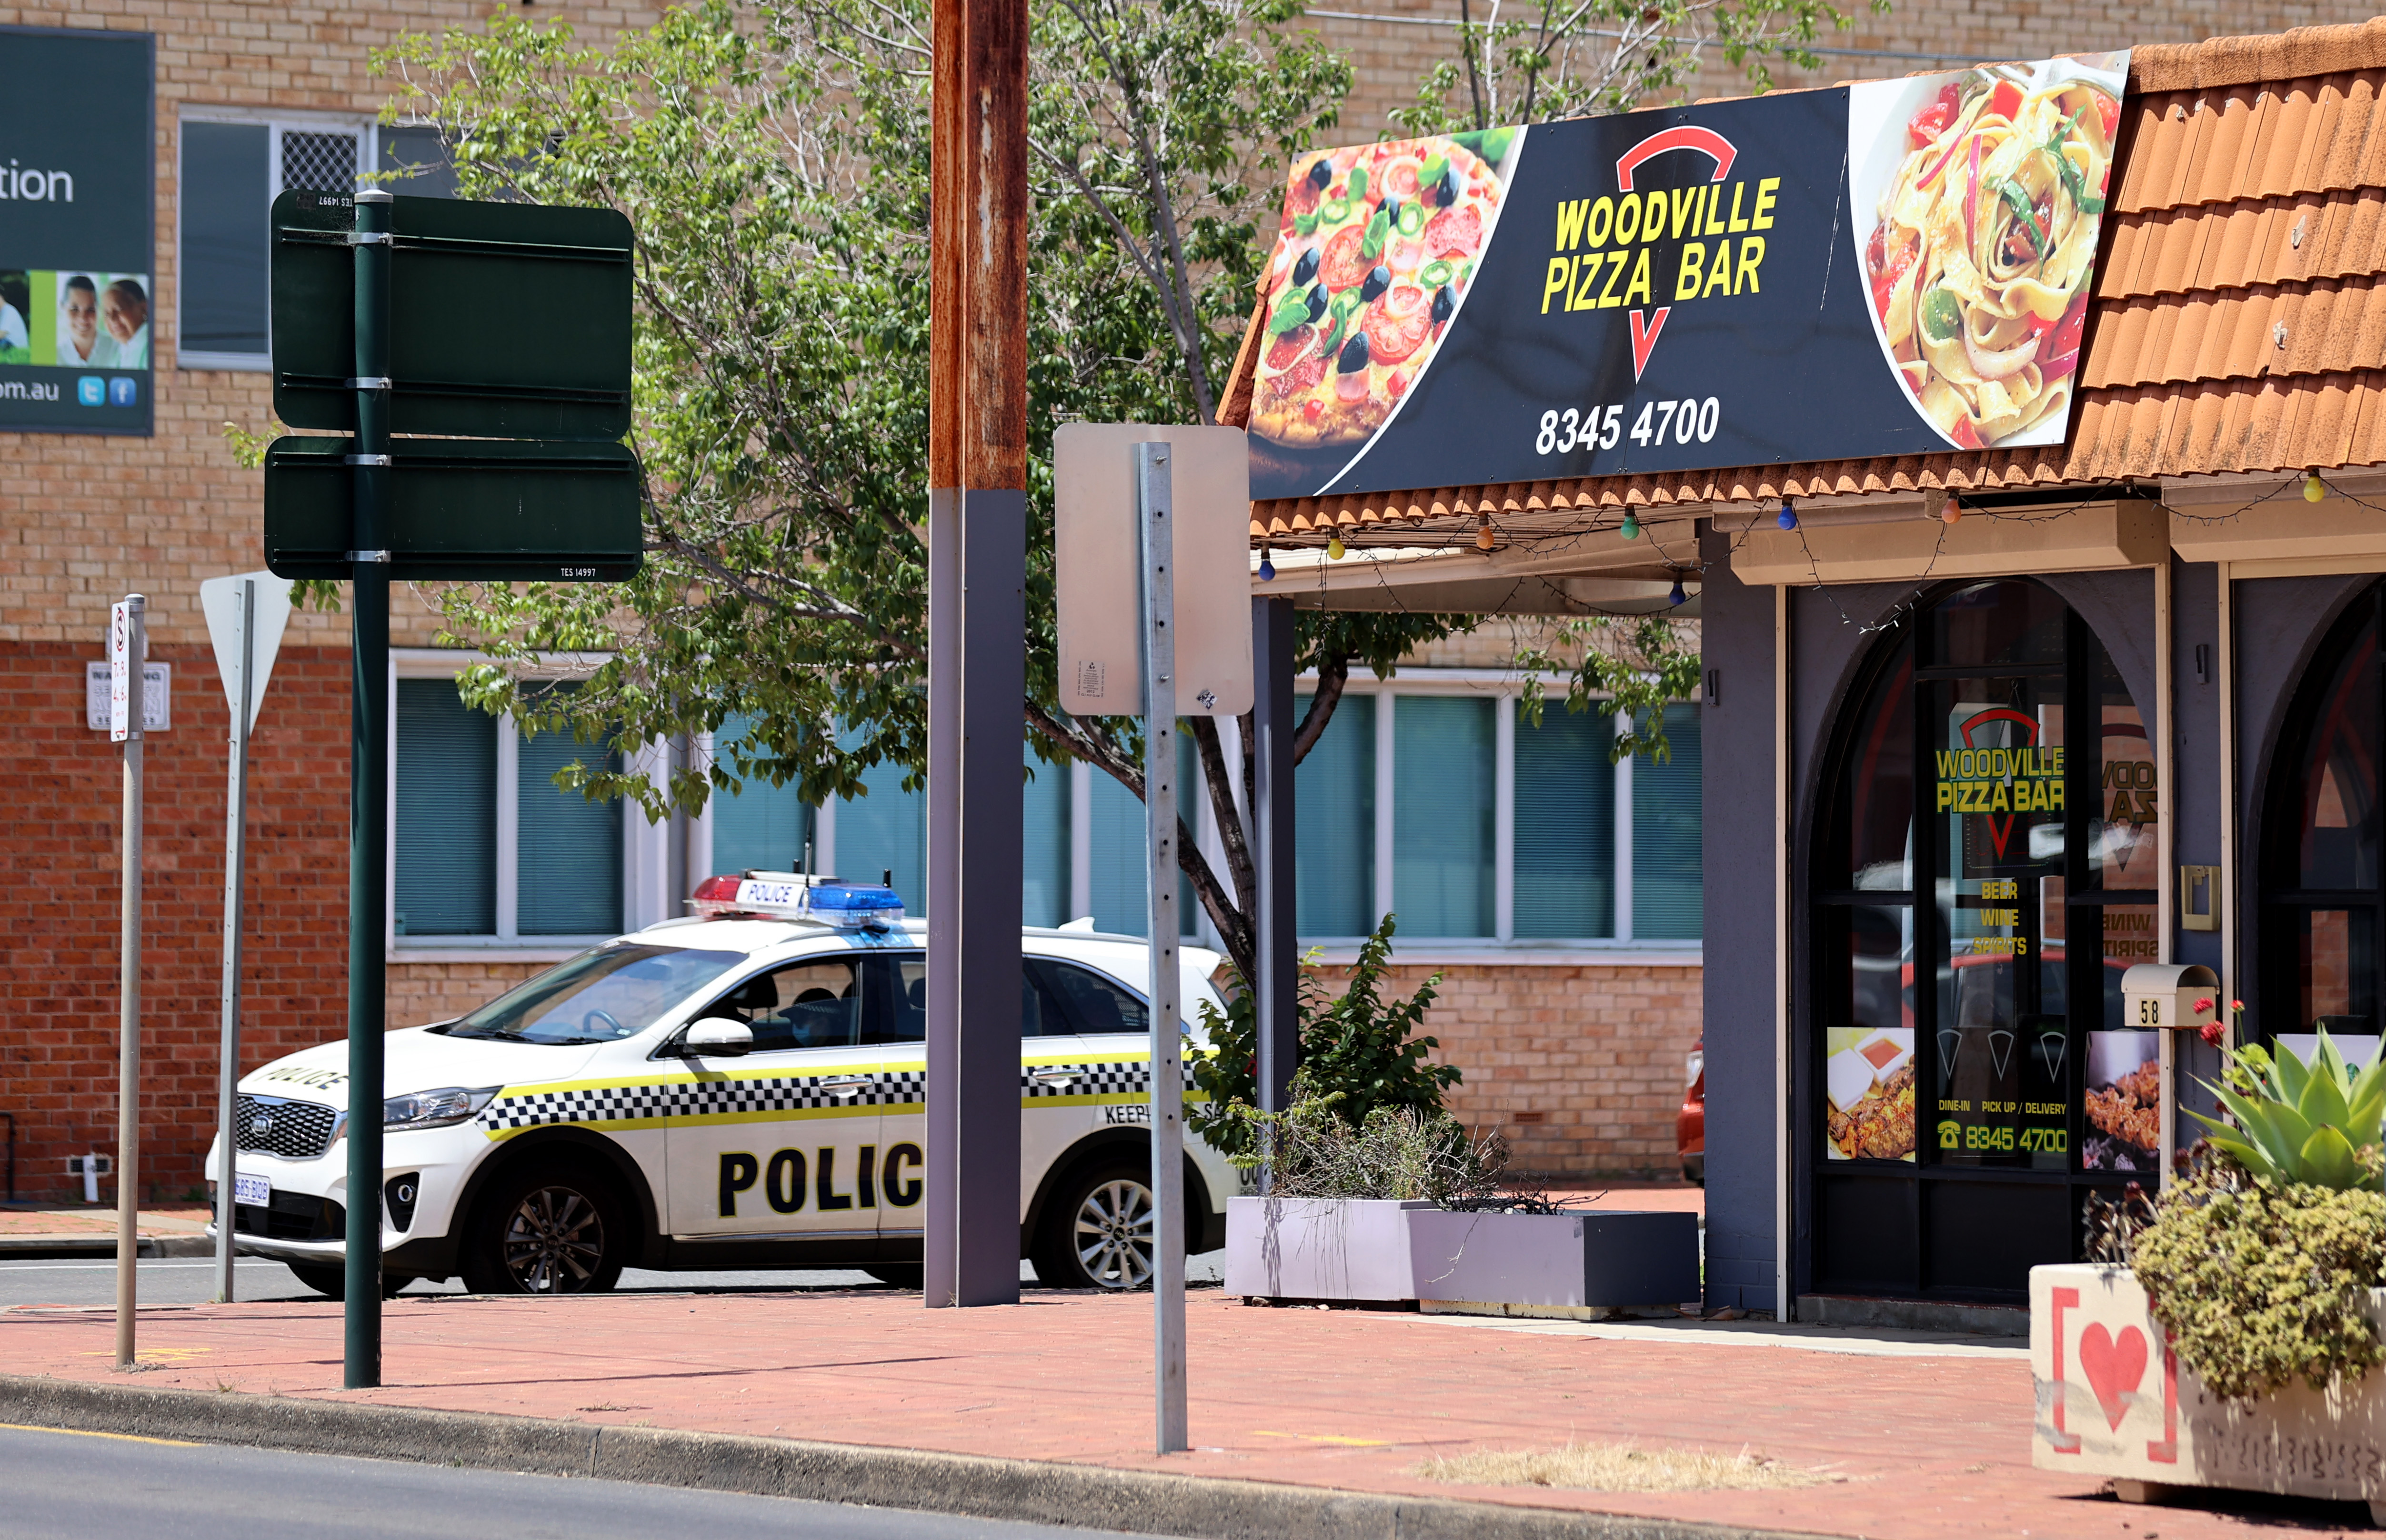 SA Pizza bar worker who allegedly lied to contact tracers 'deeply sorry'